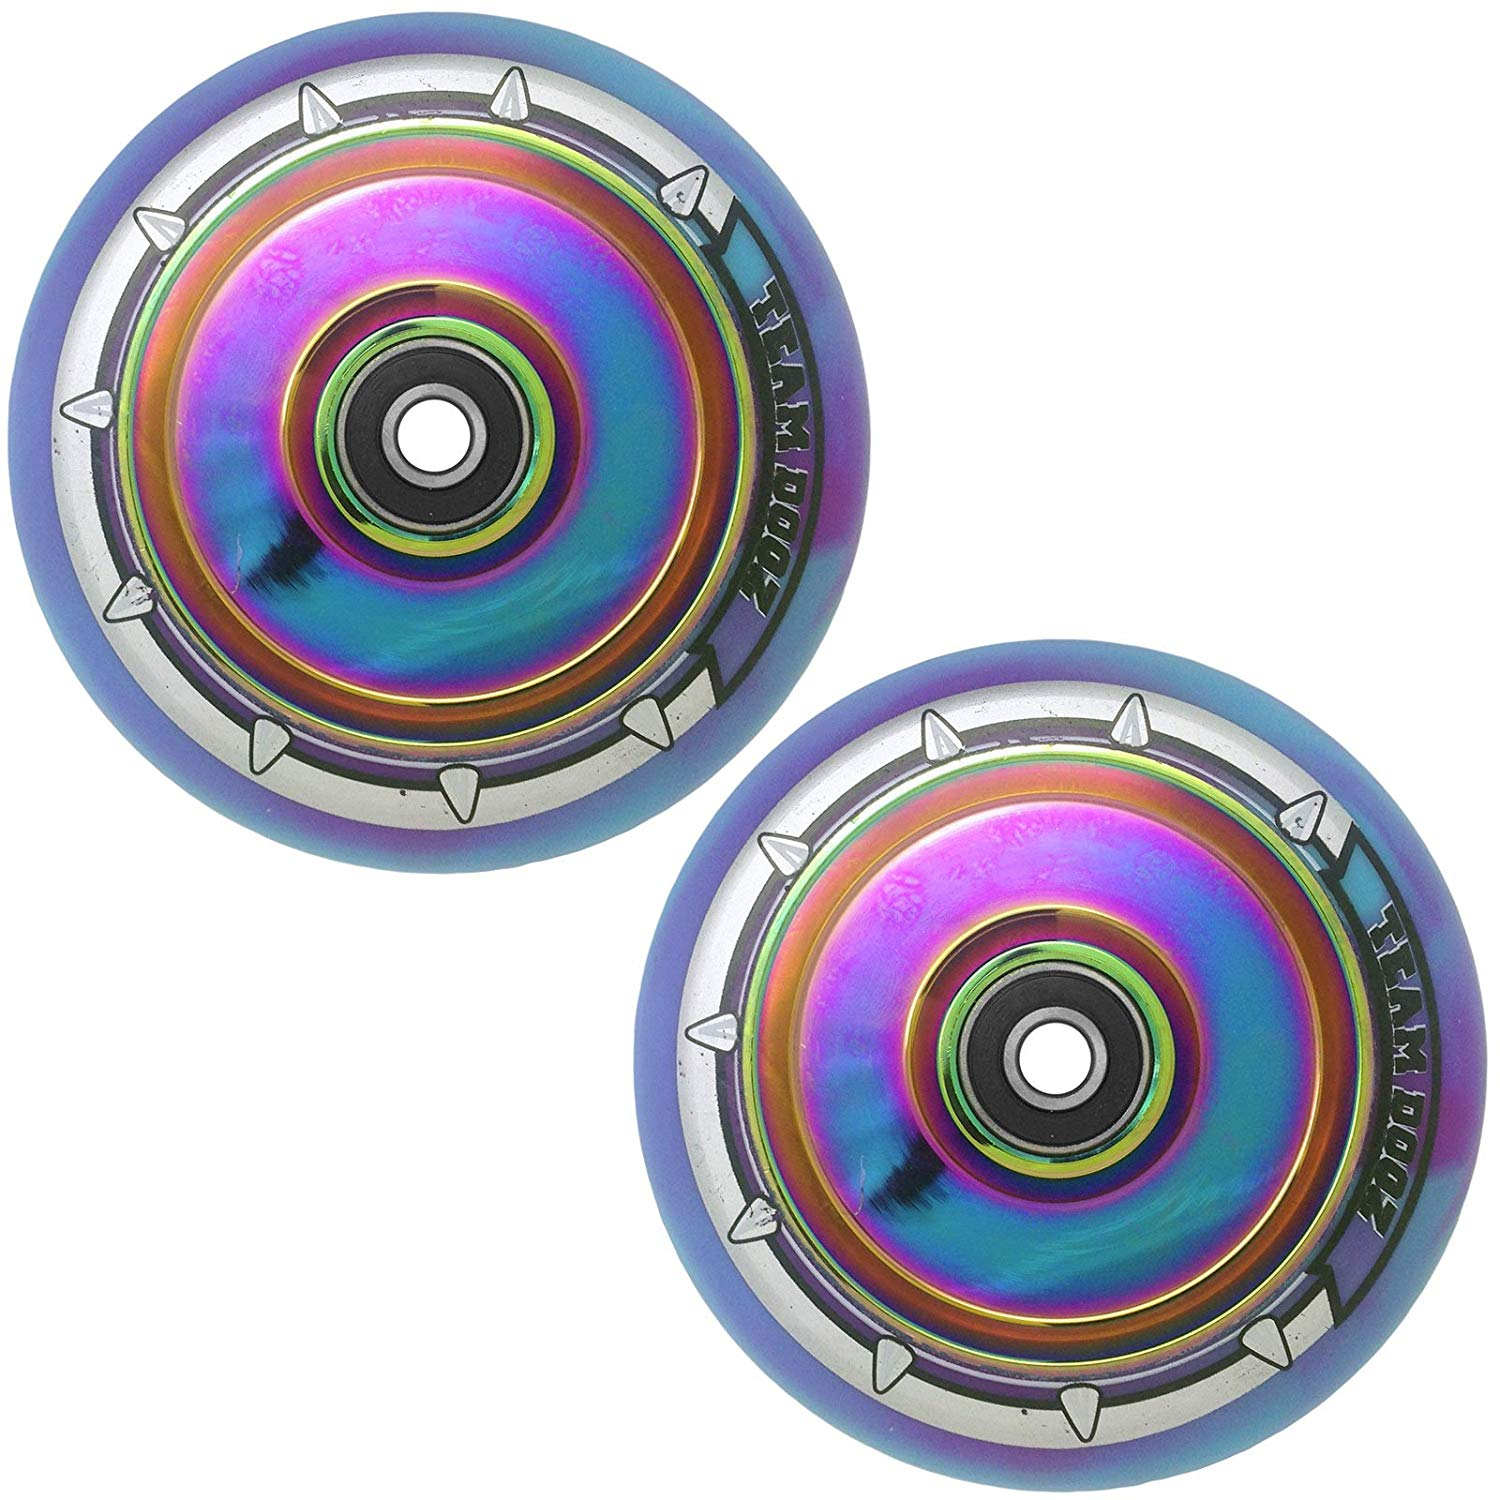 Kutrick Complete 2pcs Hollow Core Scooter Wheels Pro Scooter Wheels Replacement Pairs with Smooth Bearing